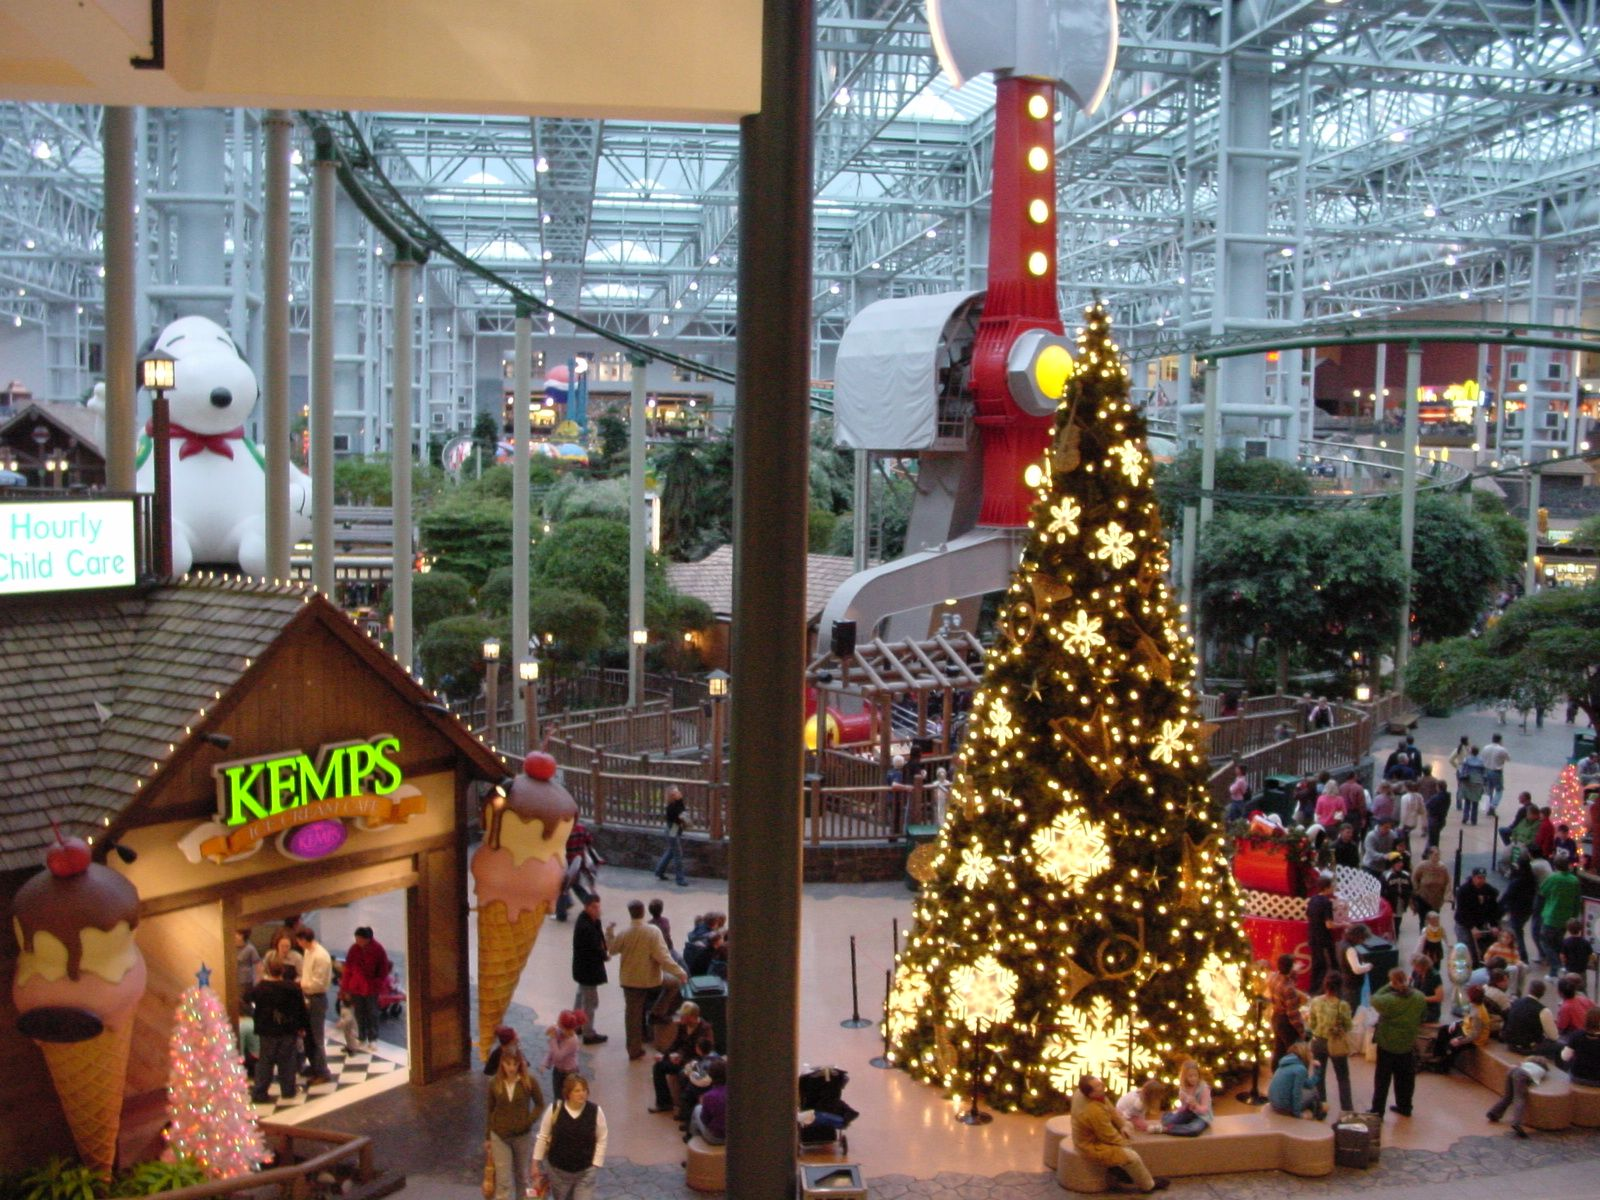 image result for mall of america christmas decorations - Mall Of America Christmas Decorations